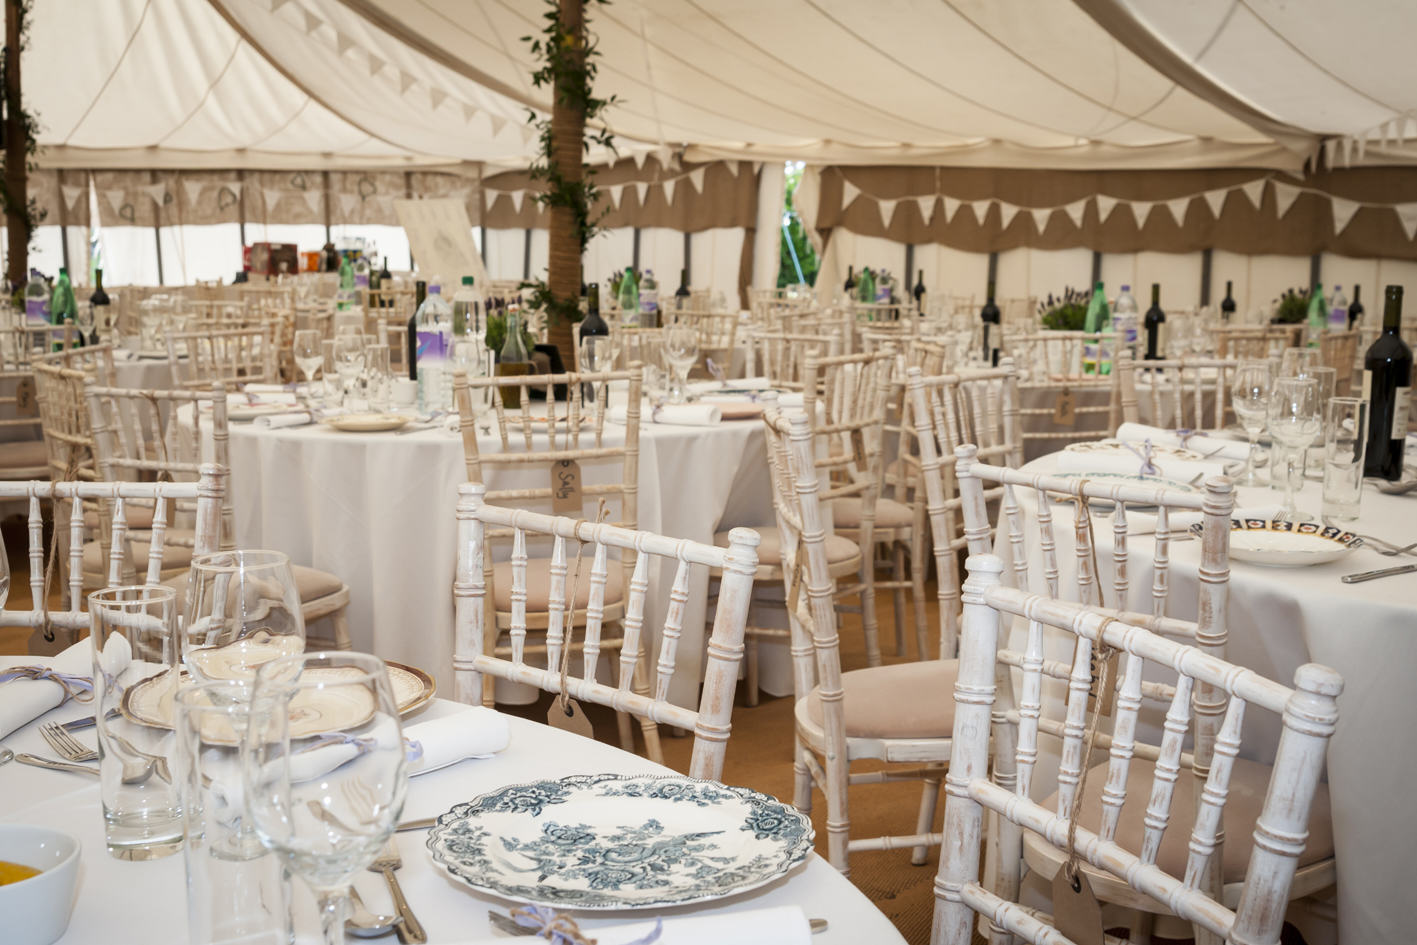 Tent marquee table and chairs